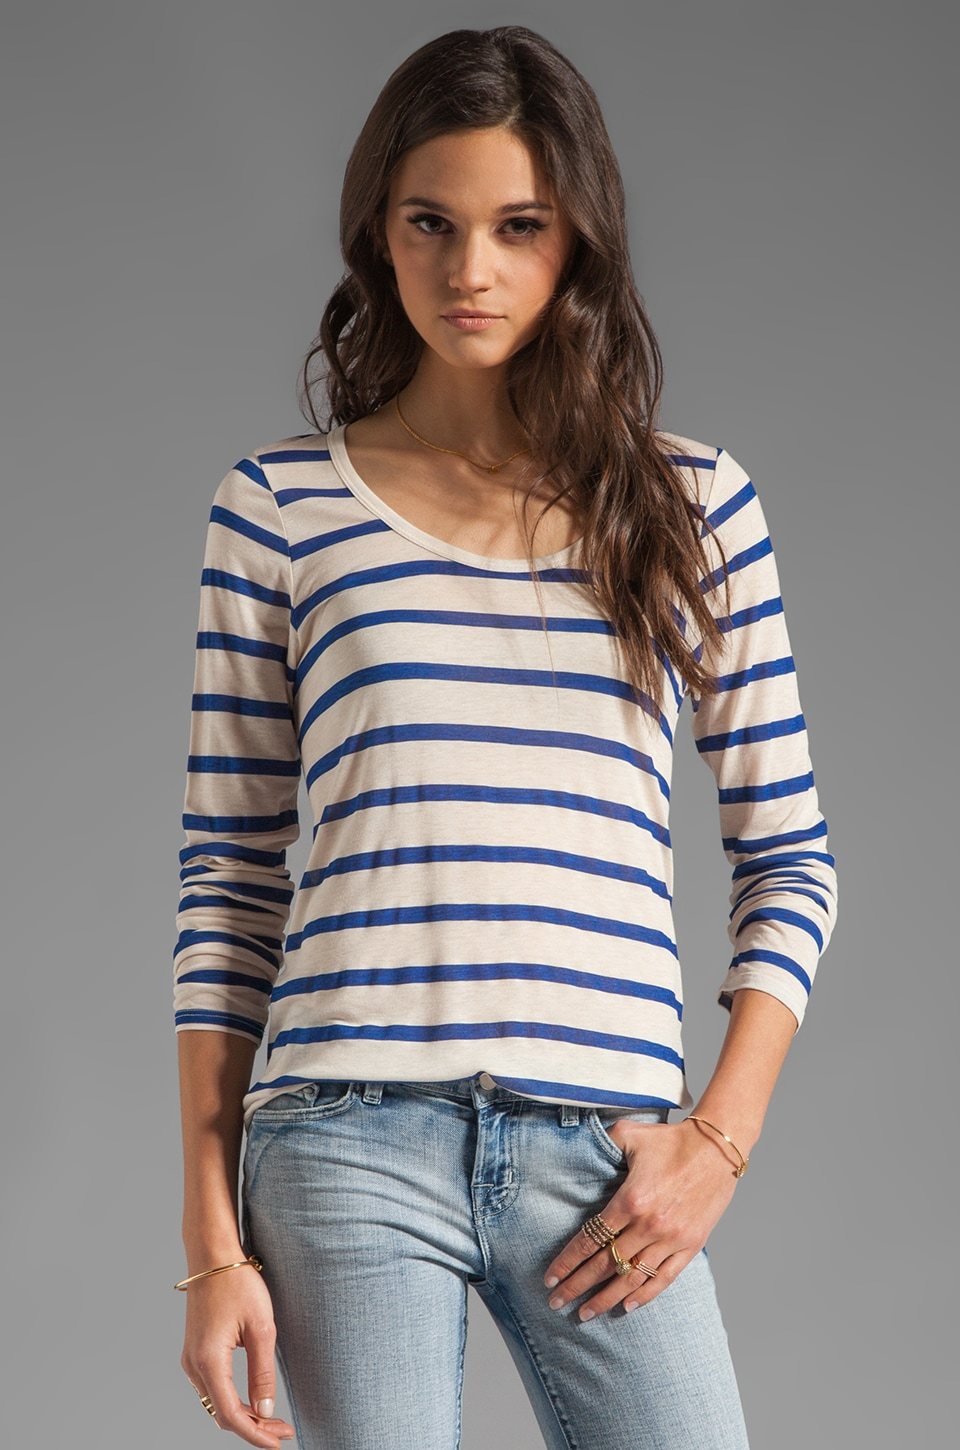 Velvet by Graham & Spencer Resort Stripe Minerva Long Sleeve Top in Navy